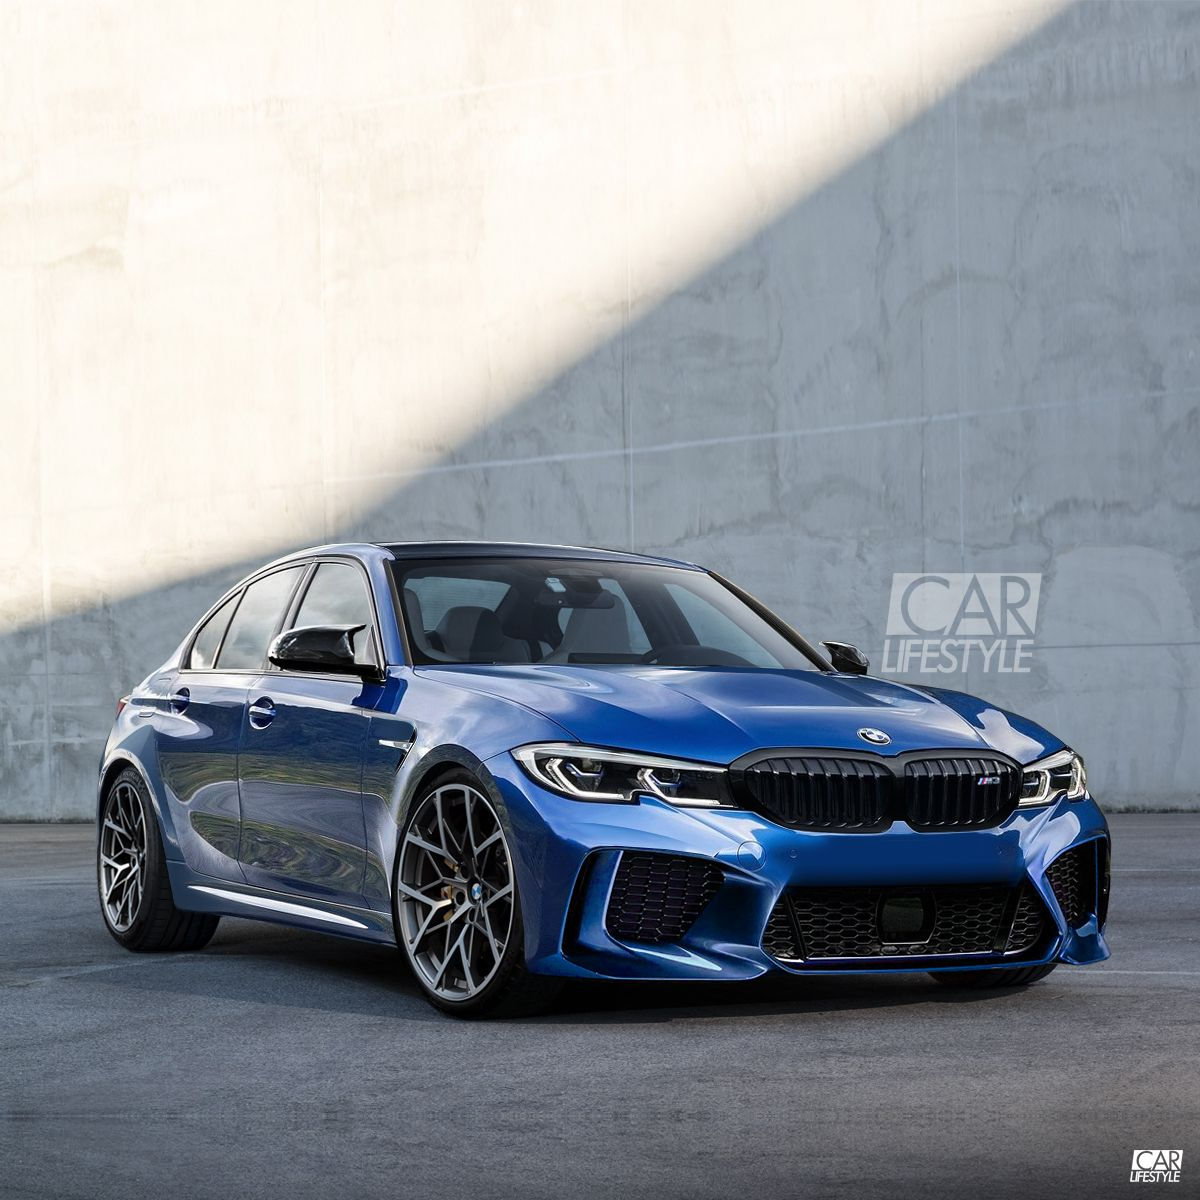 2020 Bmw G80 M3 Render Carlifestyle Bmw M3 Bmw Super Cars